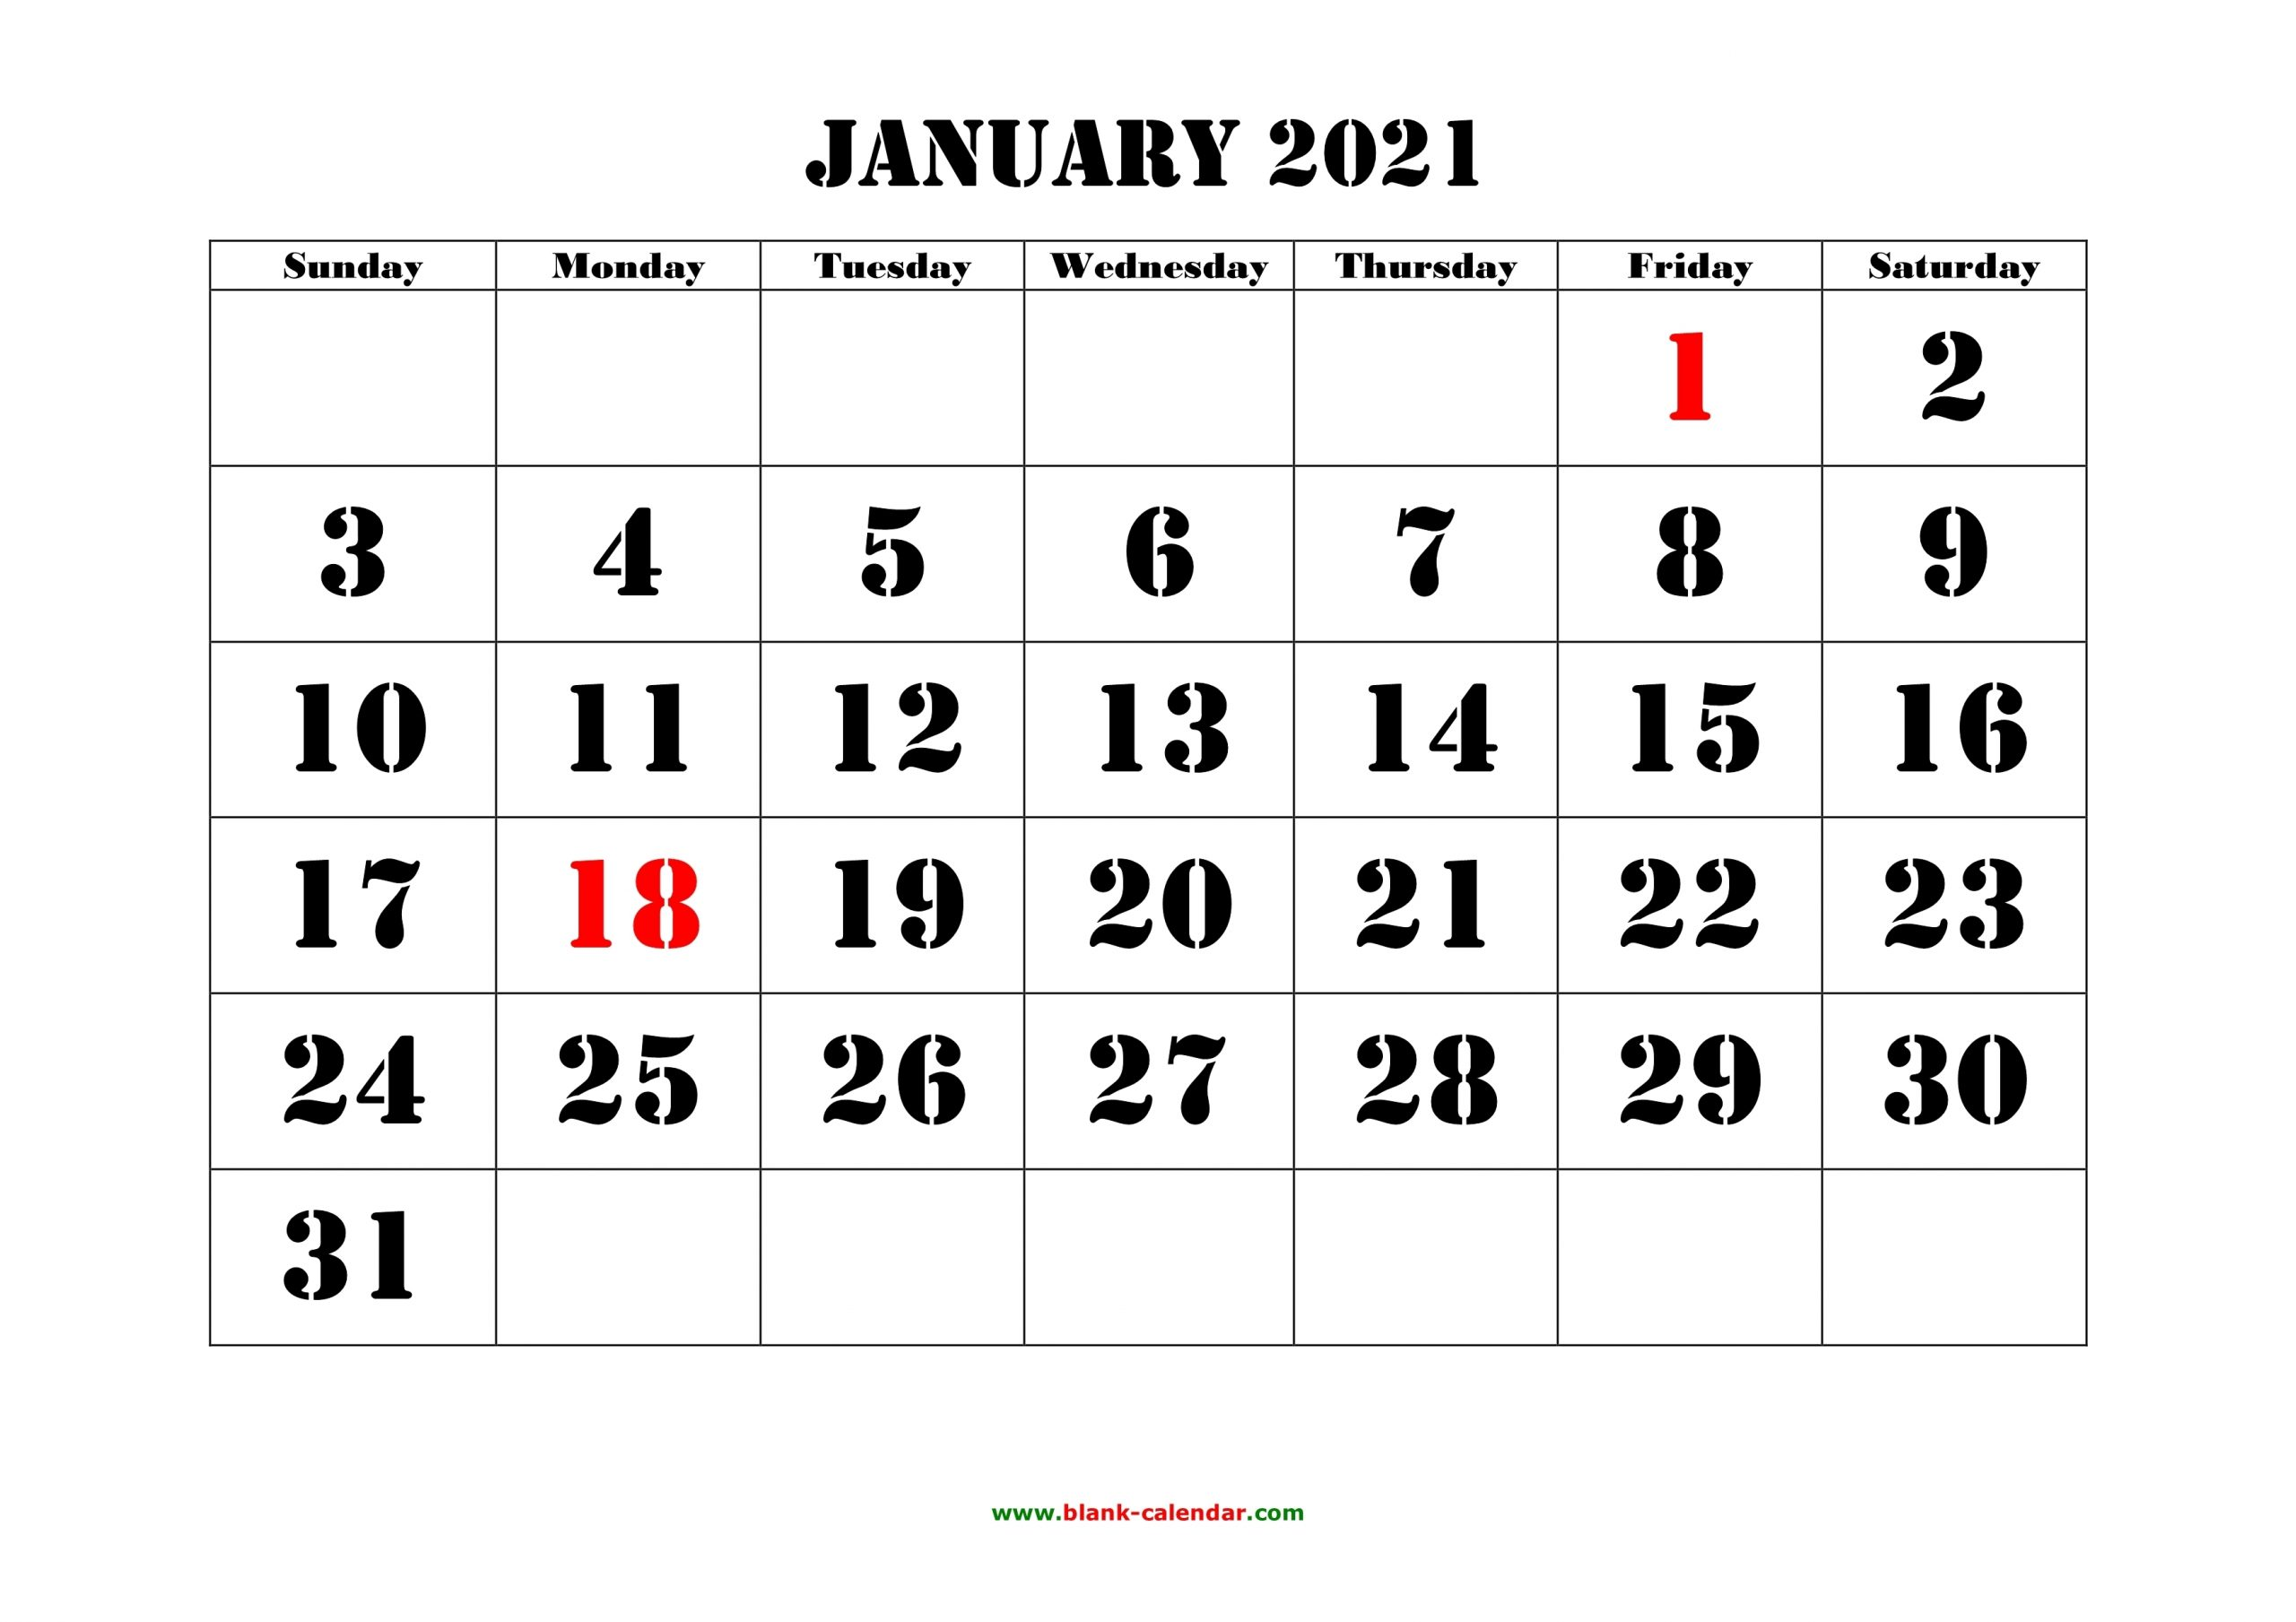 Get 2021 December Caemdar Tp Rint For No Download With Pictures